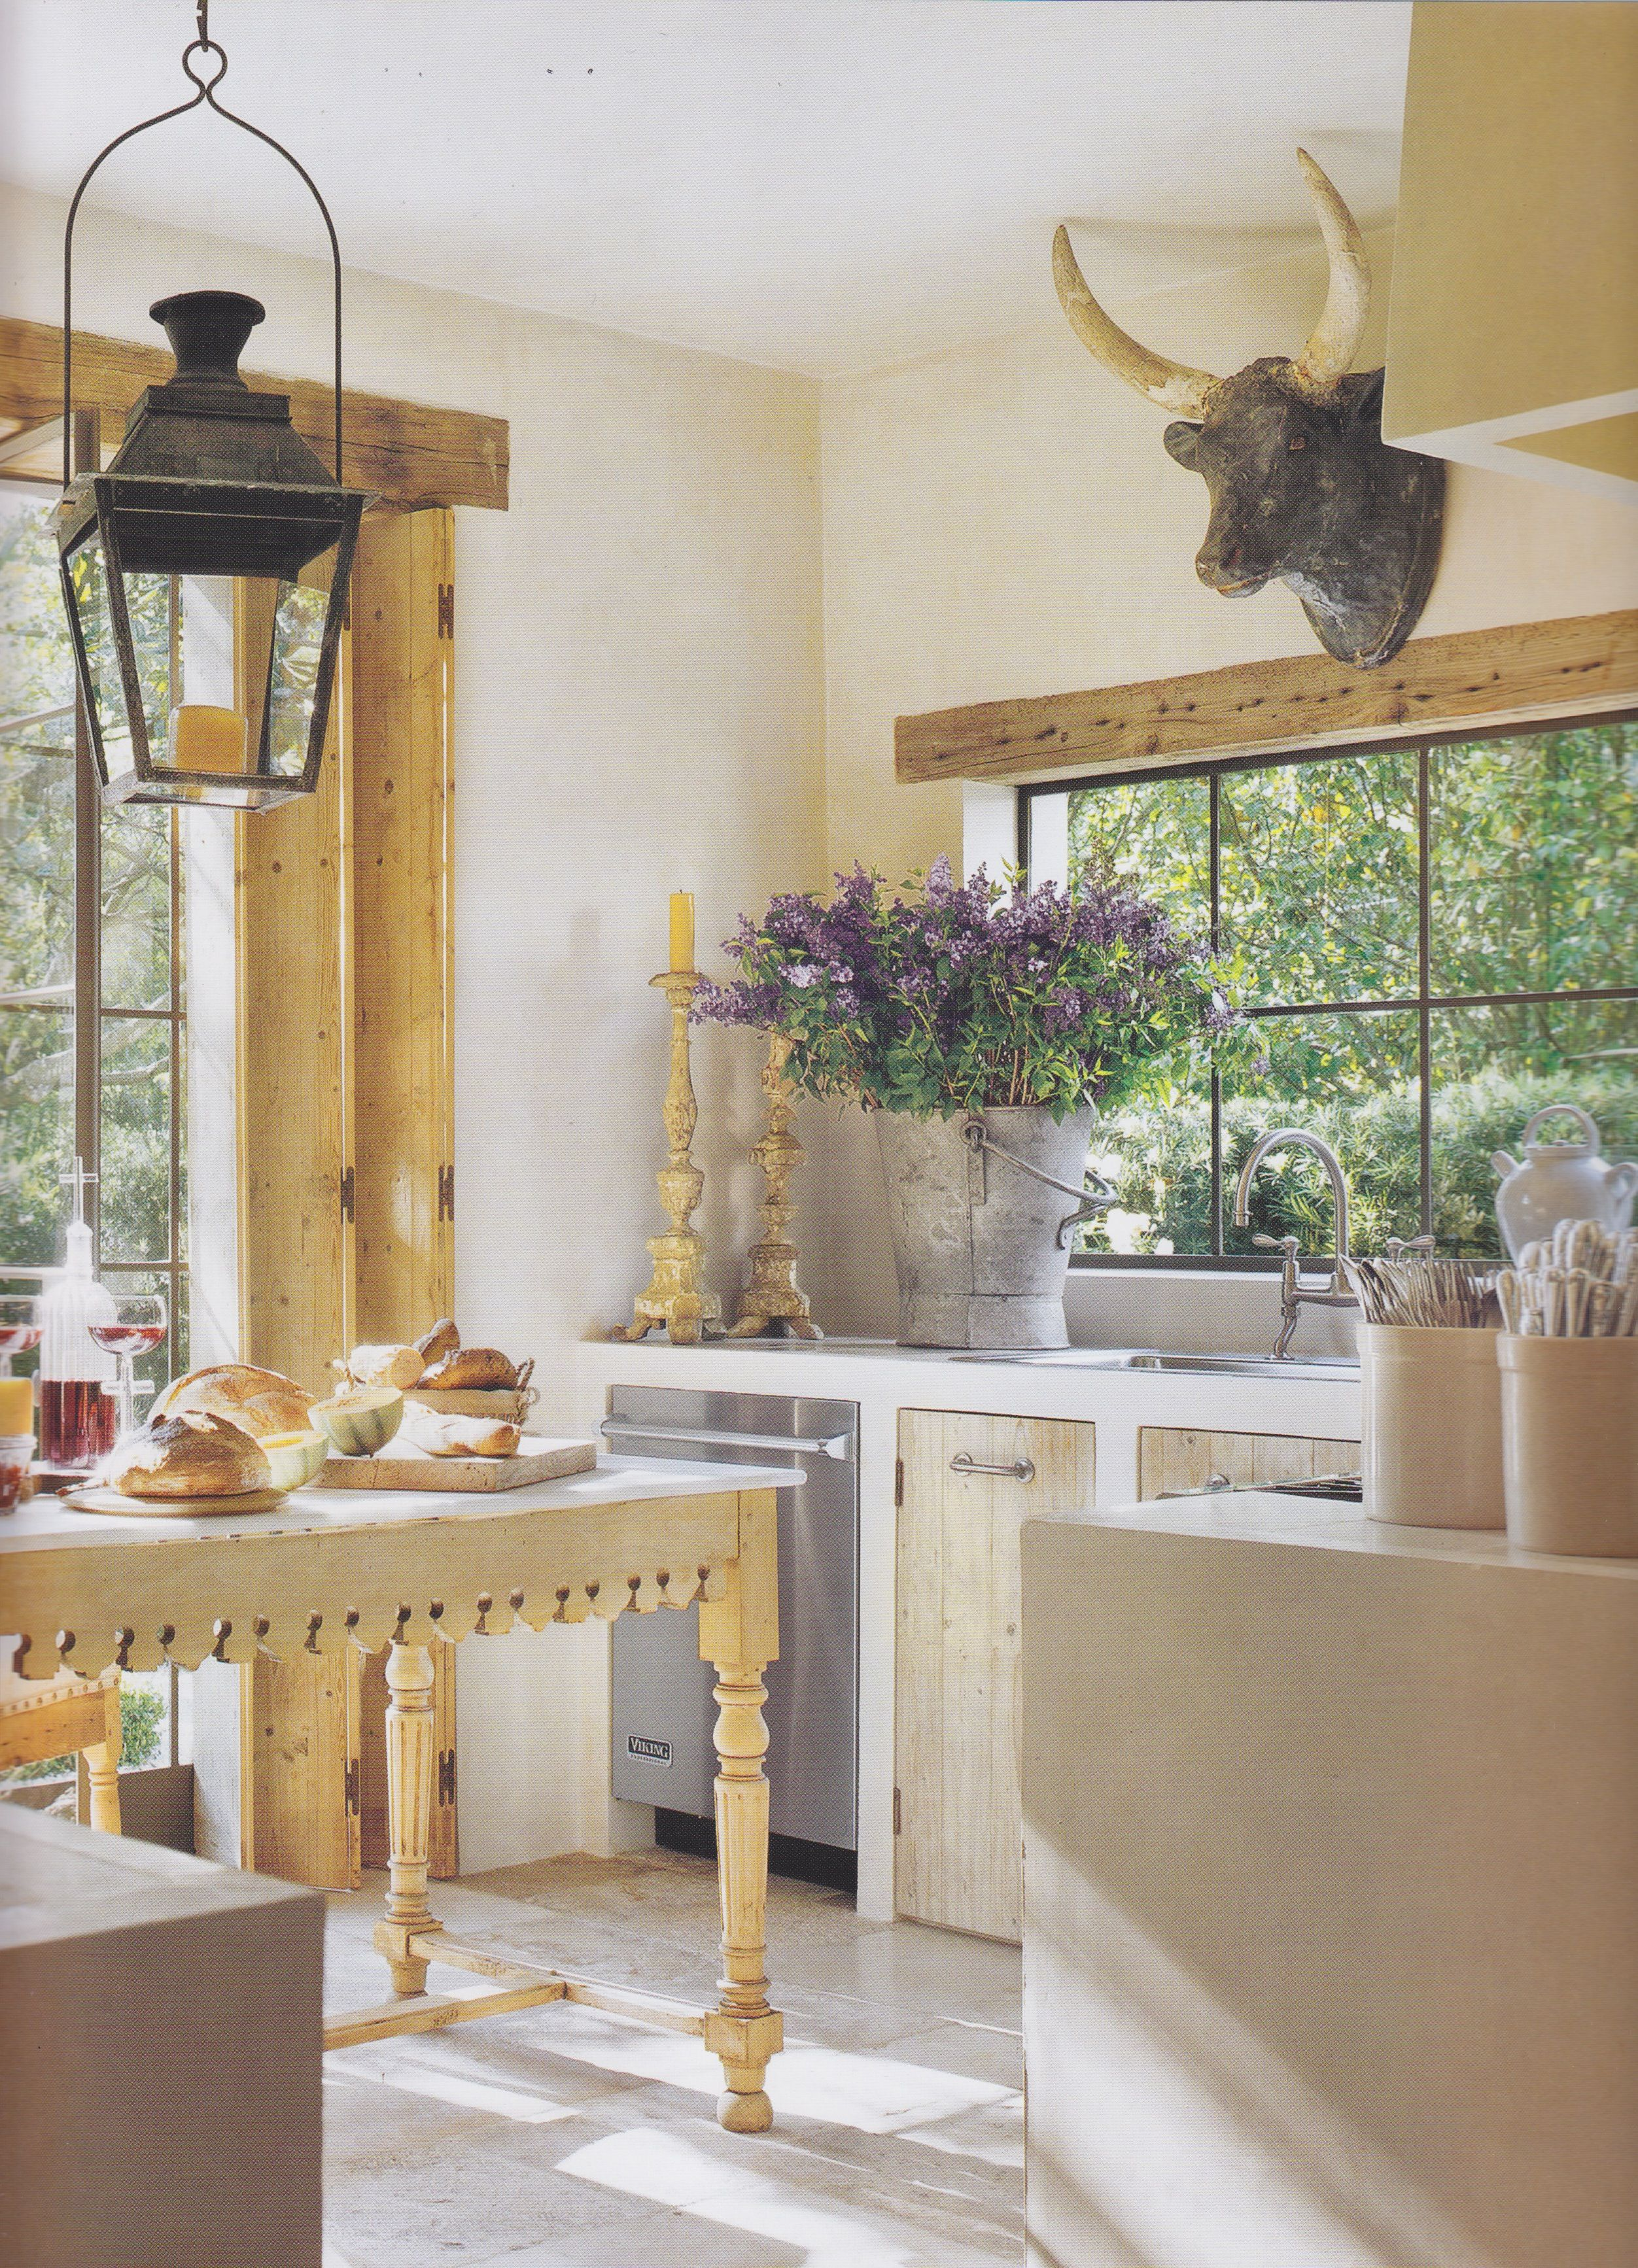 window trim just over window reclaimed wood in 2019 french farmhouse decor kitchen trends on kitchen interior with window id=73874